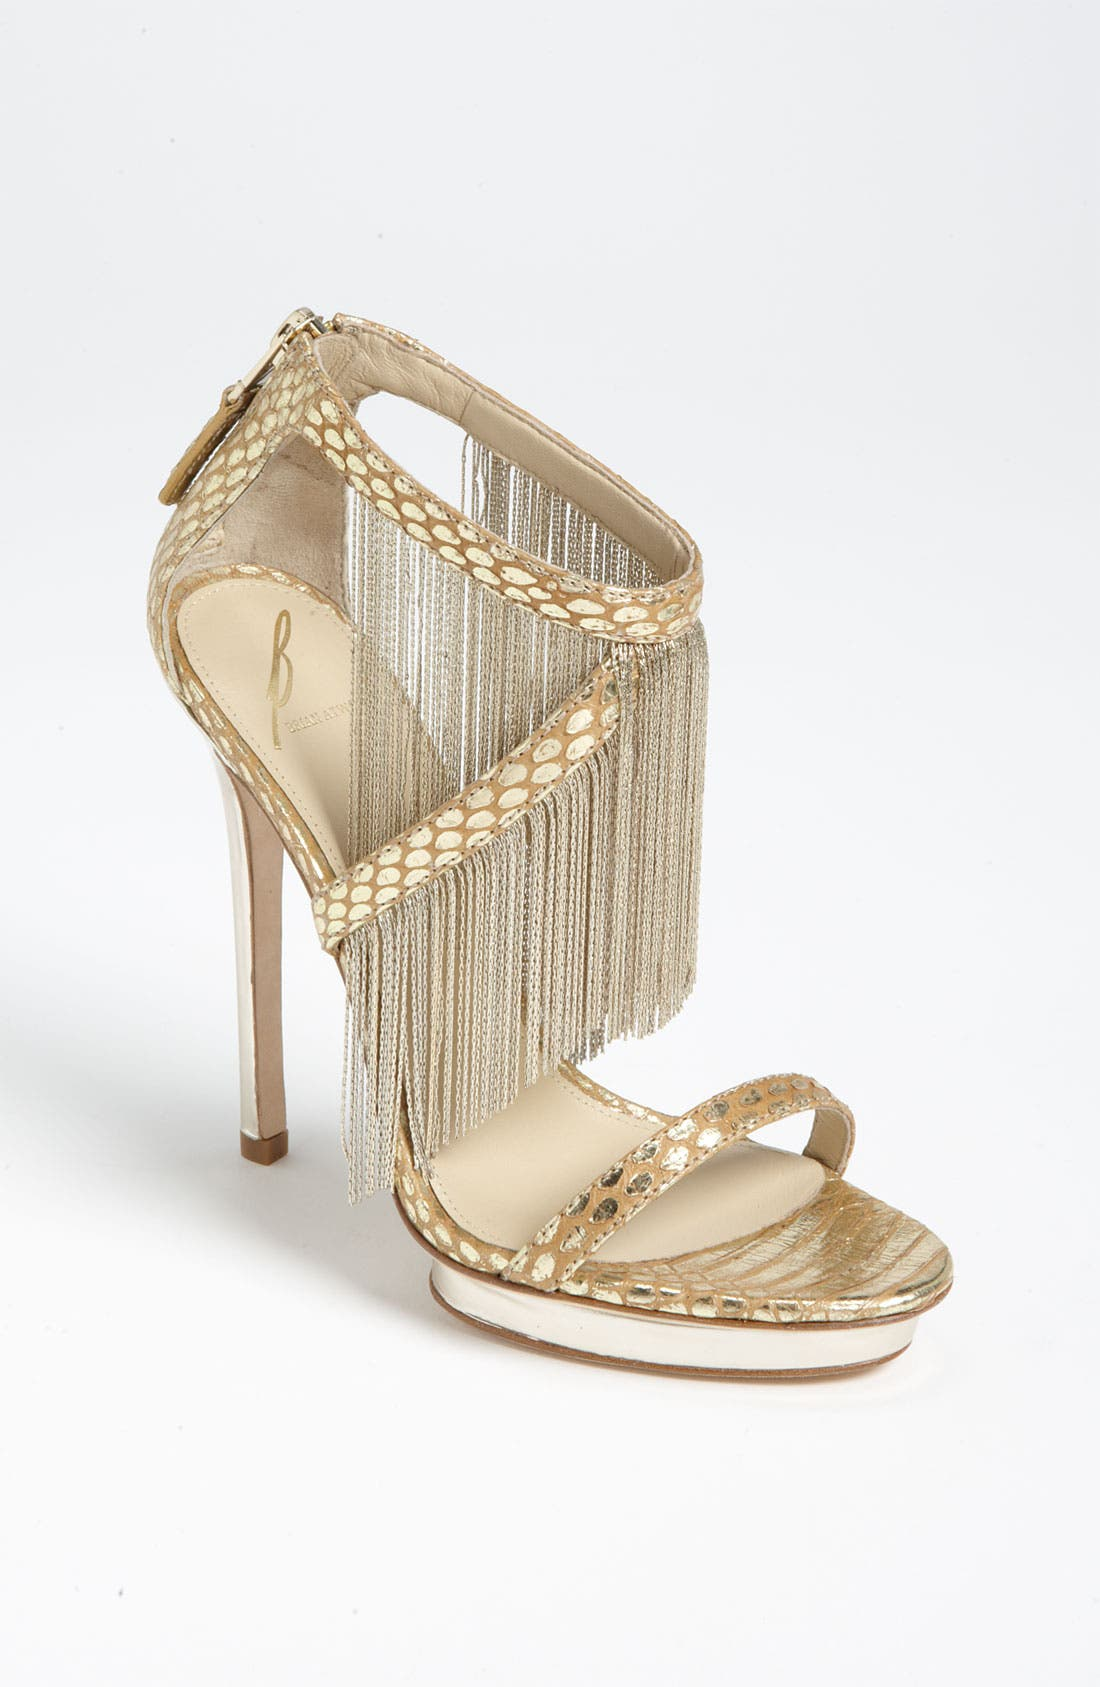 Alternate Image 1 Selected - B Brian Atwood 'Cassiane' High Sandal